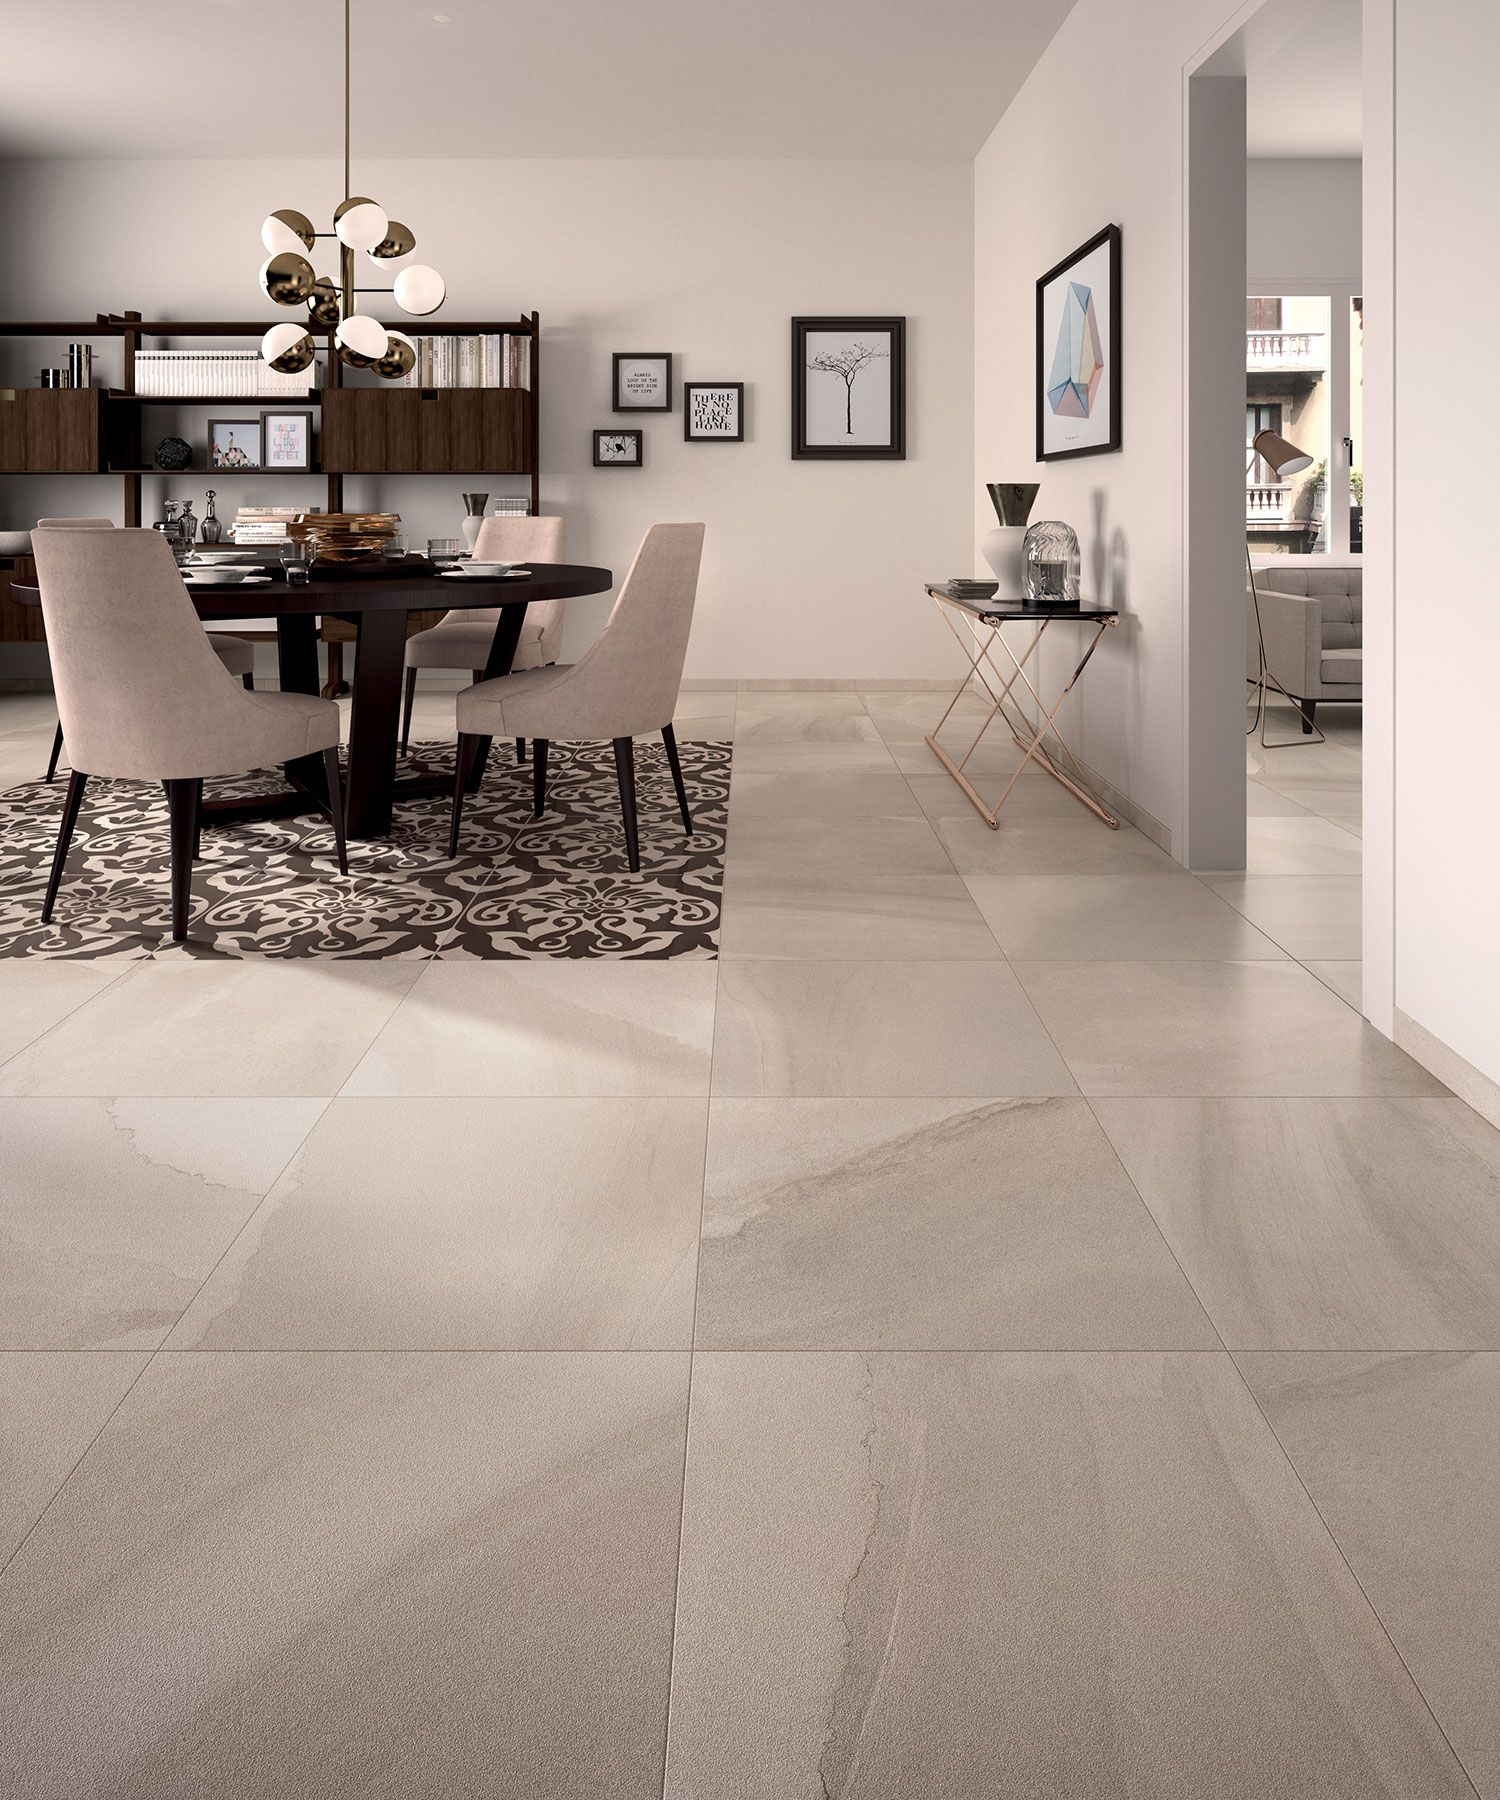 Only 25m2 fluido sabbia lappato porcelain italian floor tile fluido sabbia lappato porcelain italian floor tile dailygadgetfo Gallery